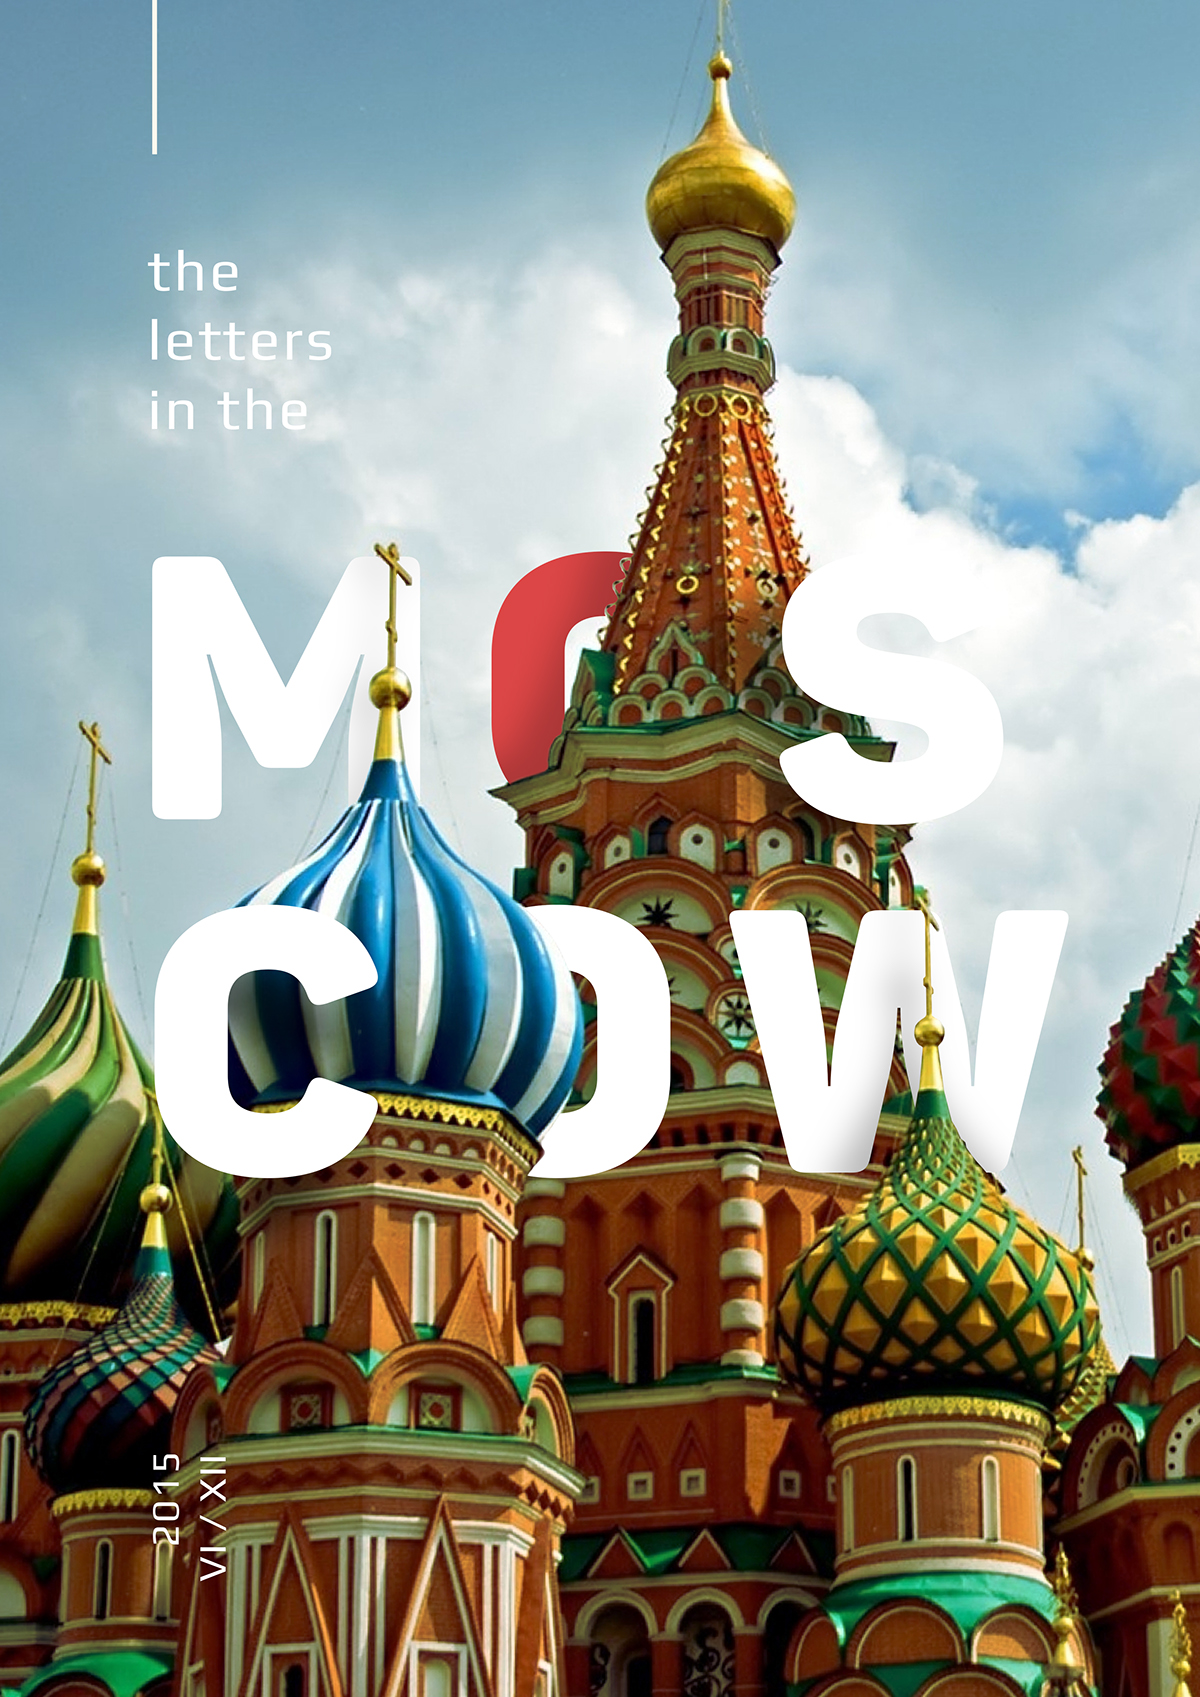 art poster newyork letters graphic design photo Moscow ILLUSTRATION  rio